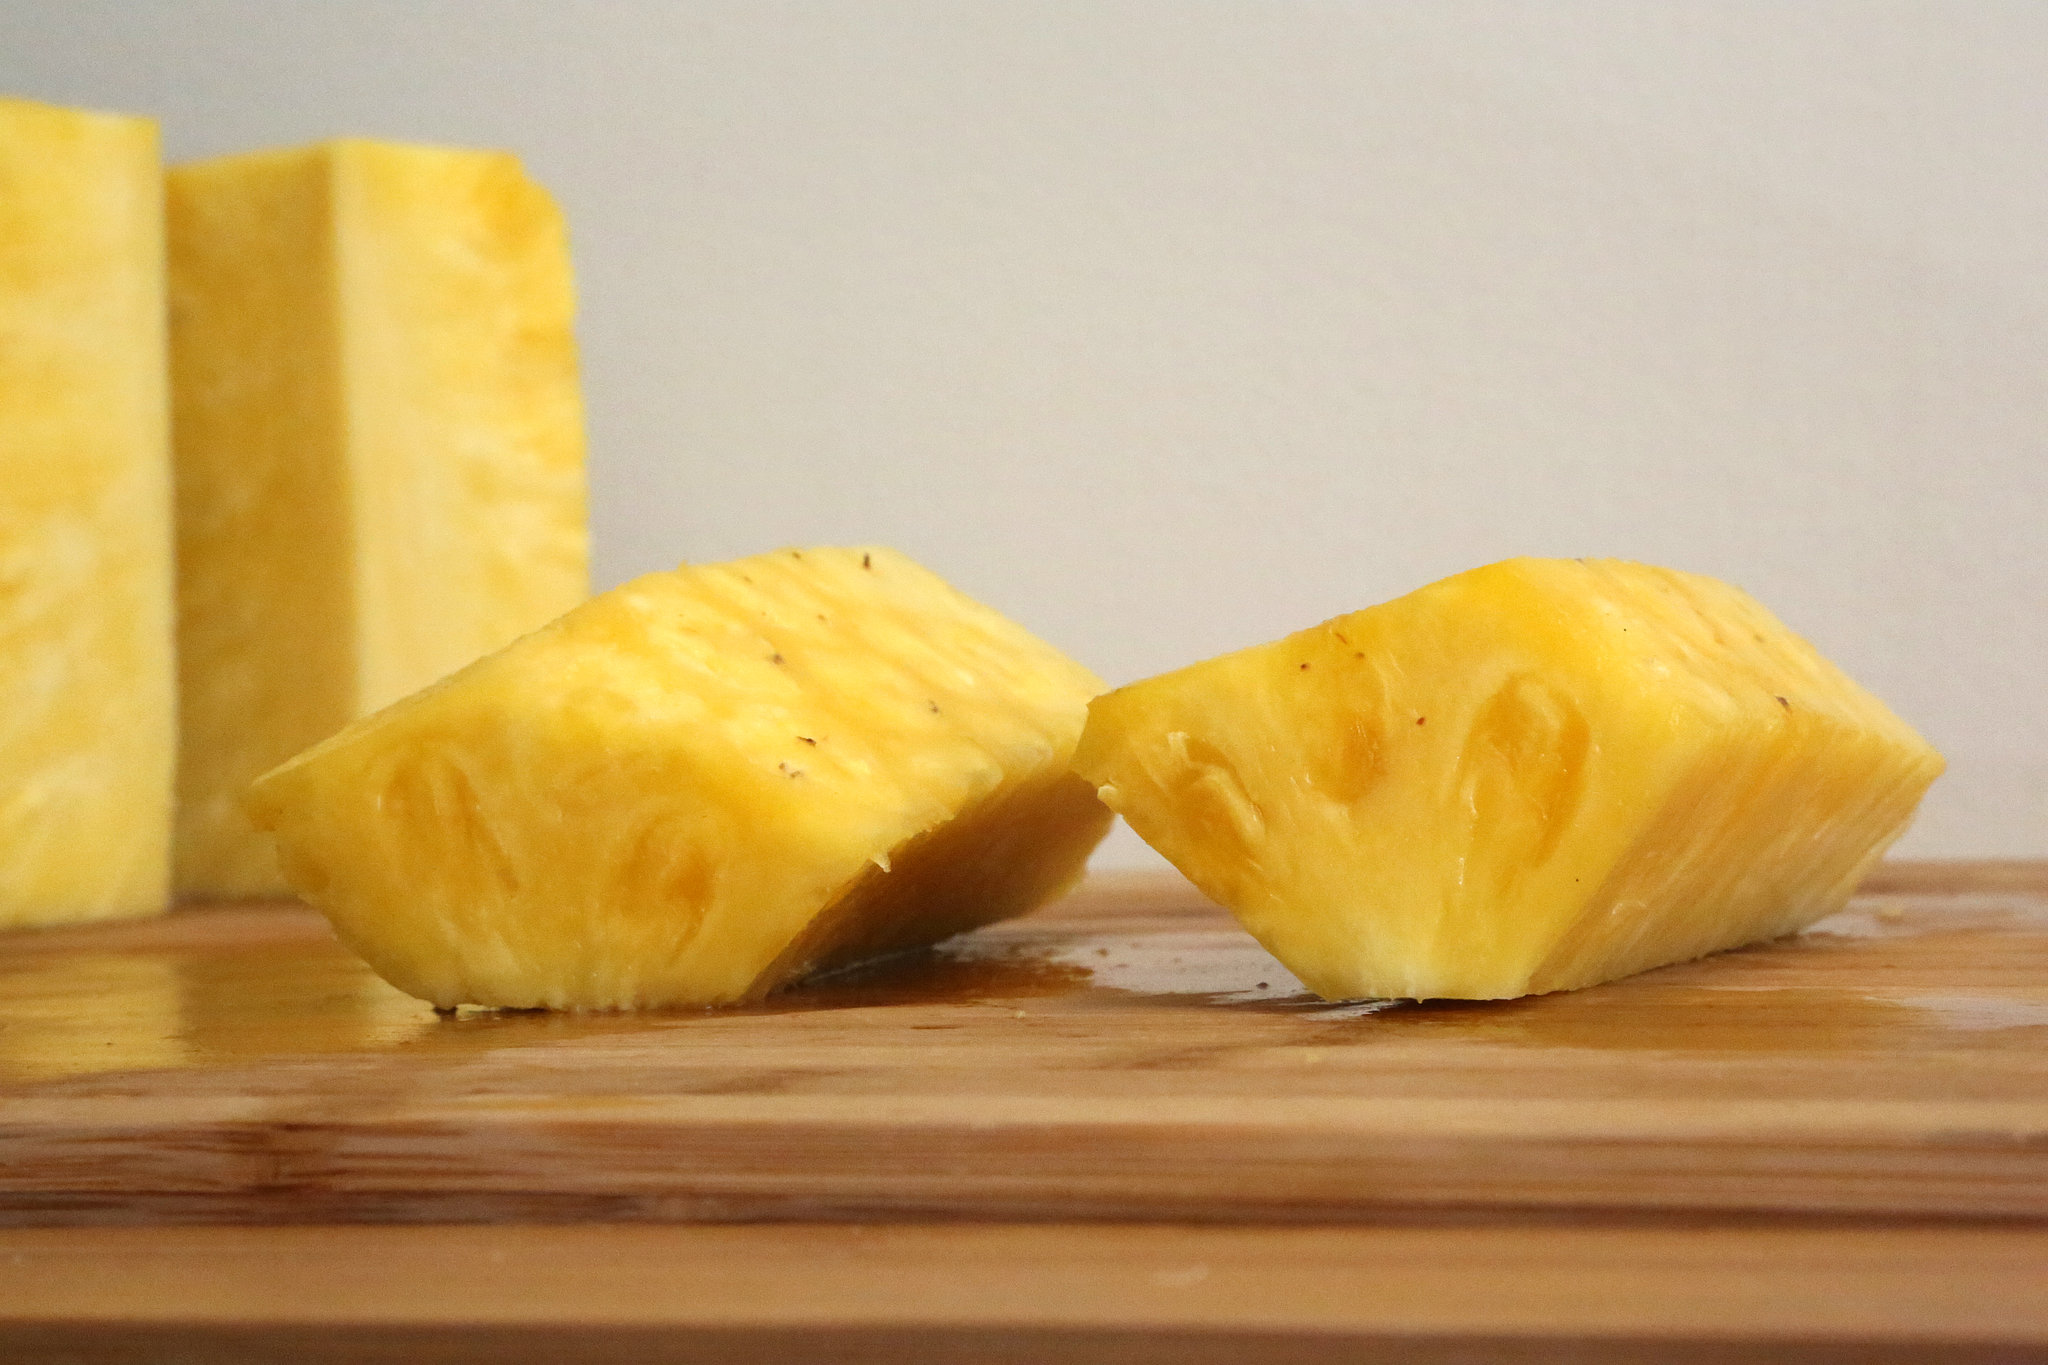 Now you have ready-to-cut pineapple spears.